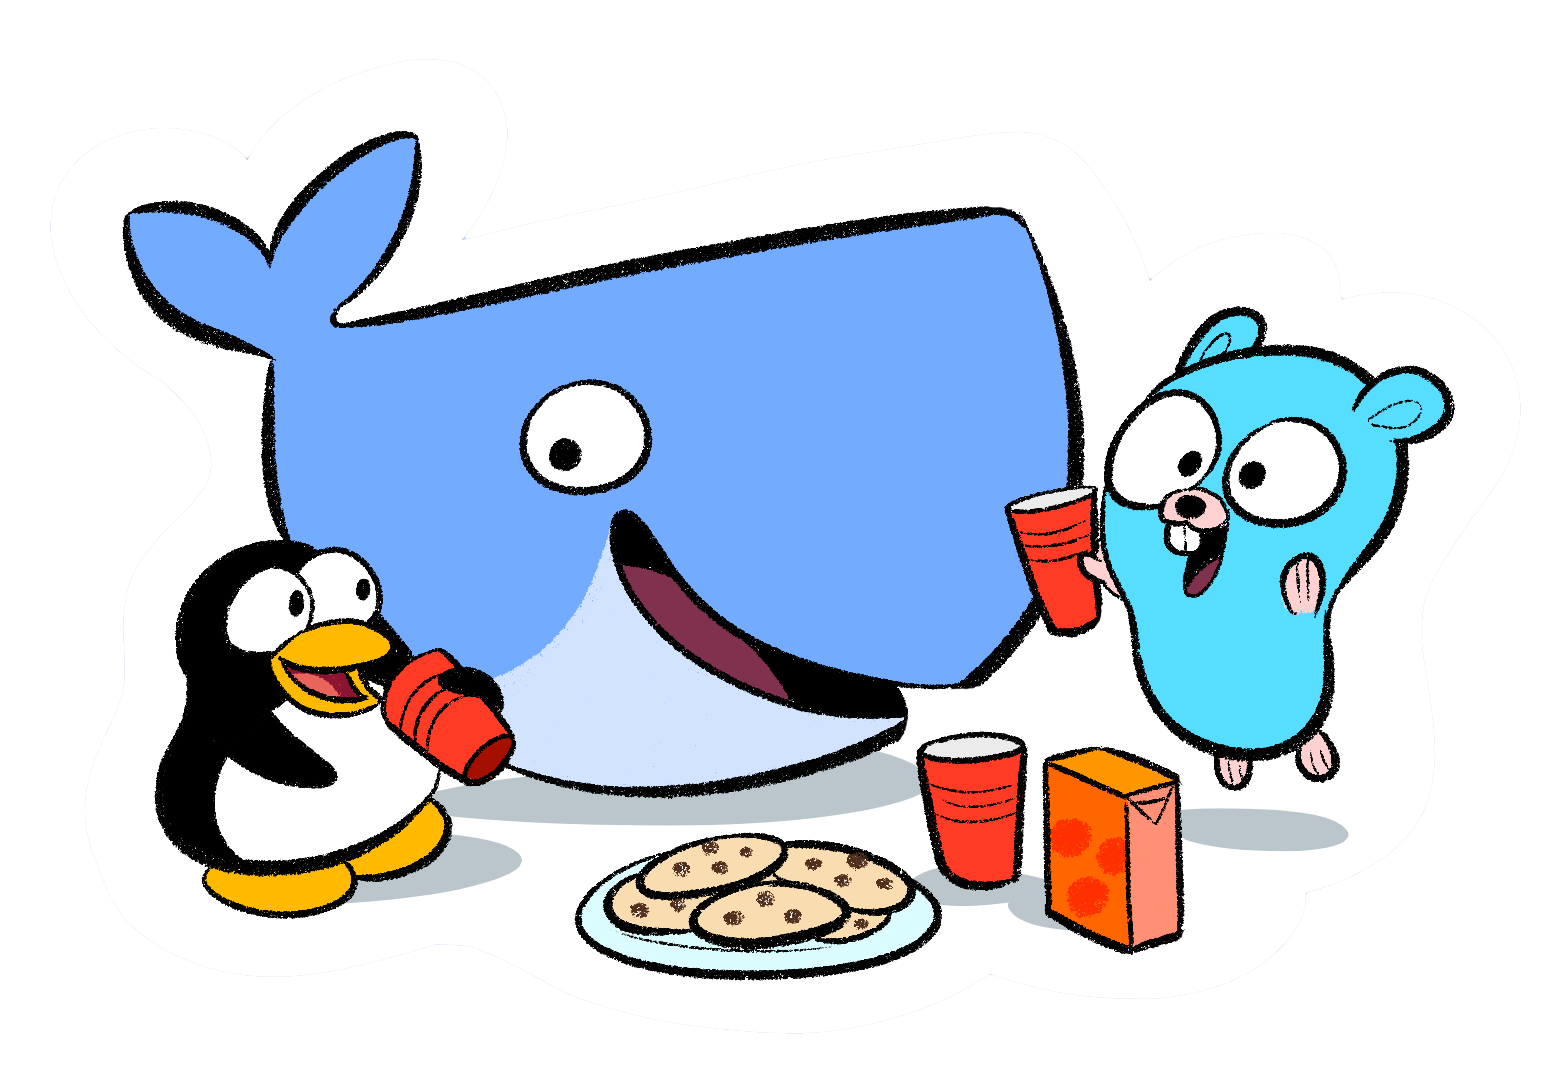 Docker friend